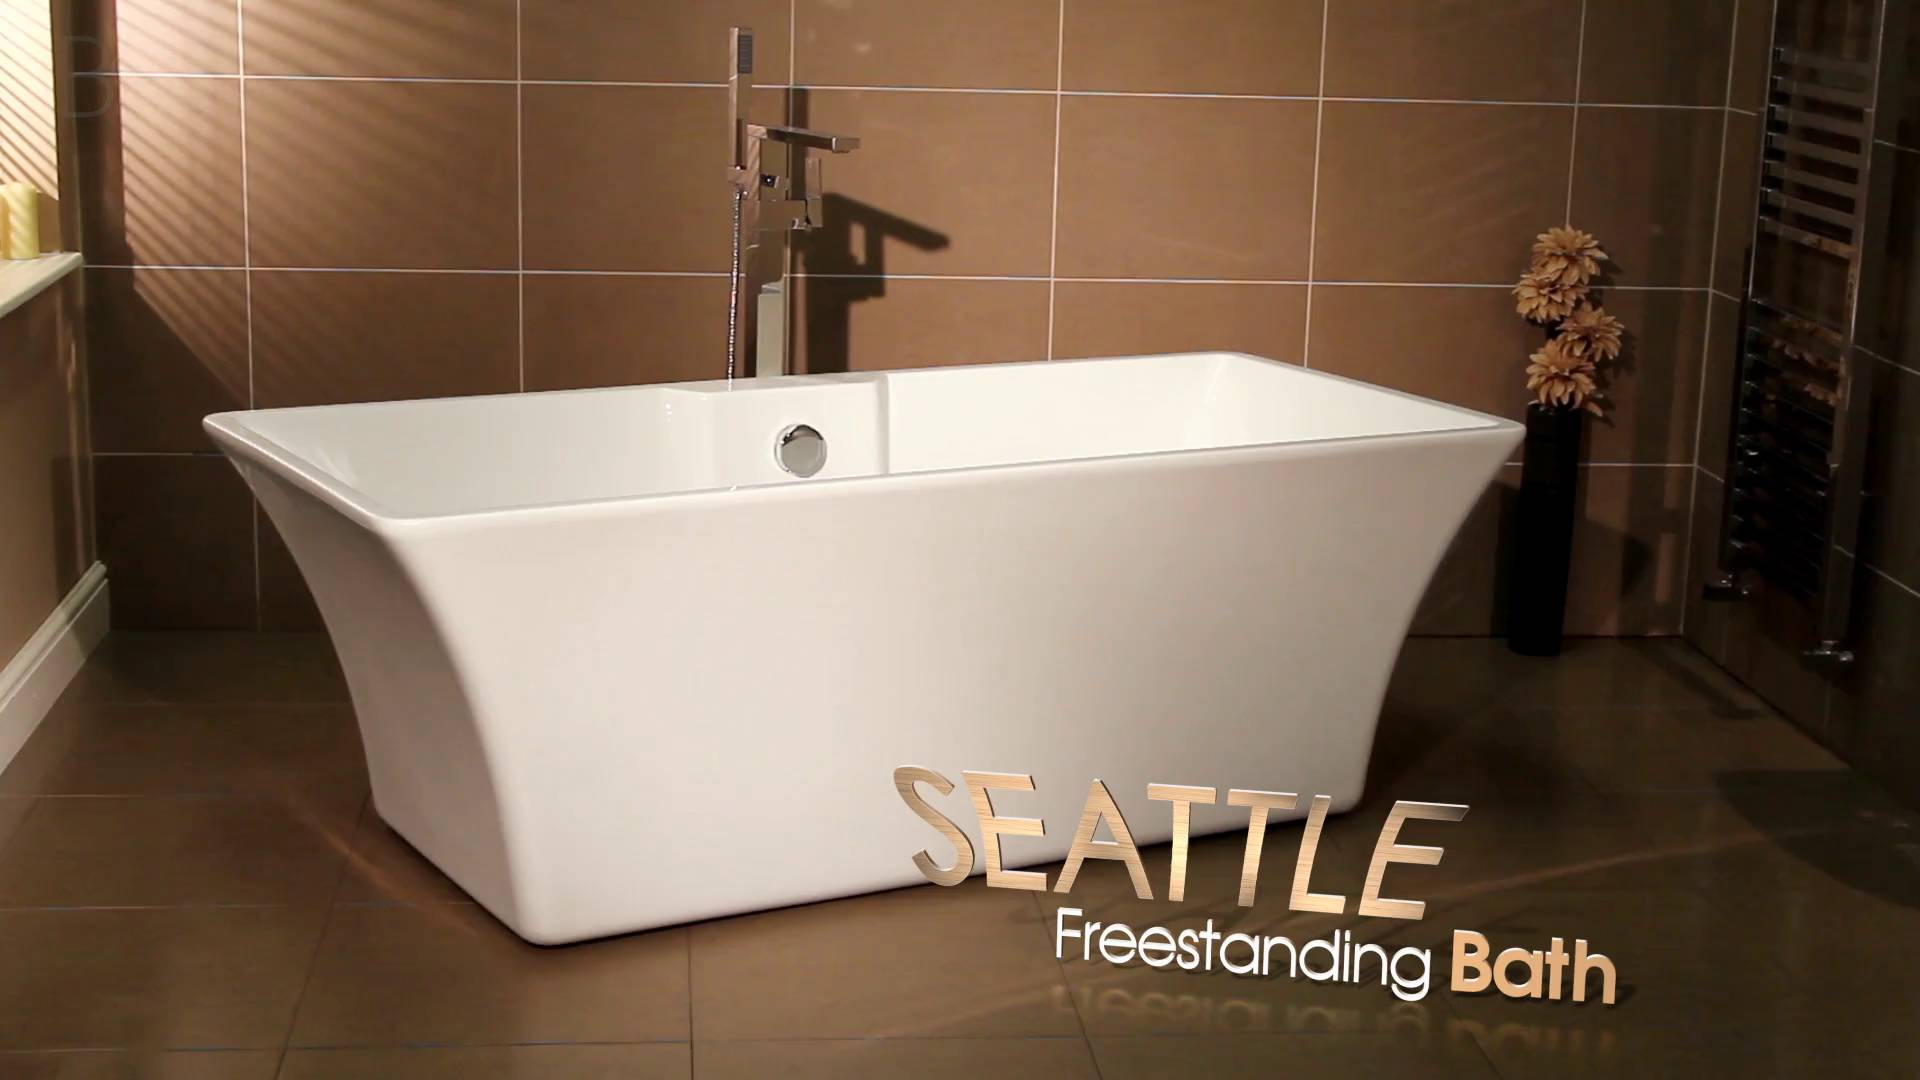 Seattle 1690 x 740 Luxury Freestanding Bath